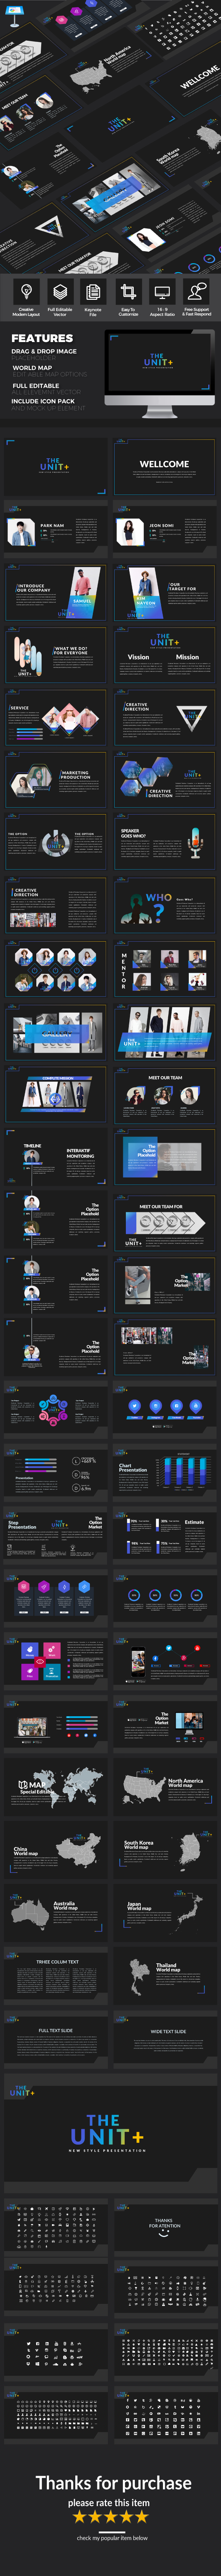 GraphicRiver The unit Keynote presentation template 21062533